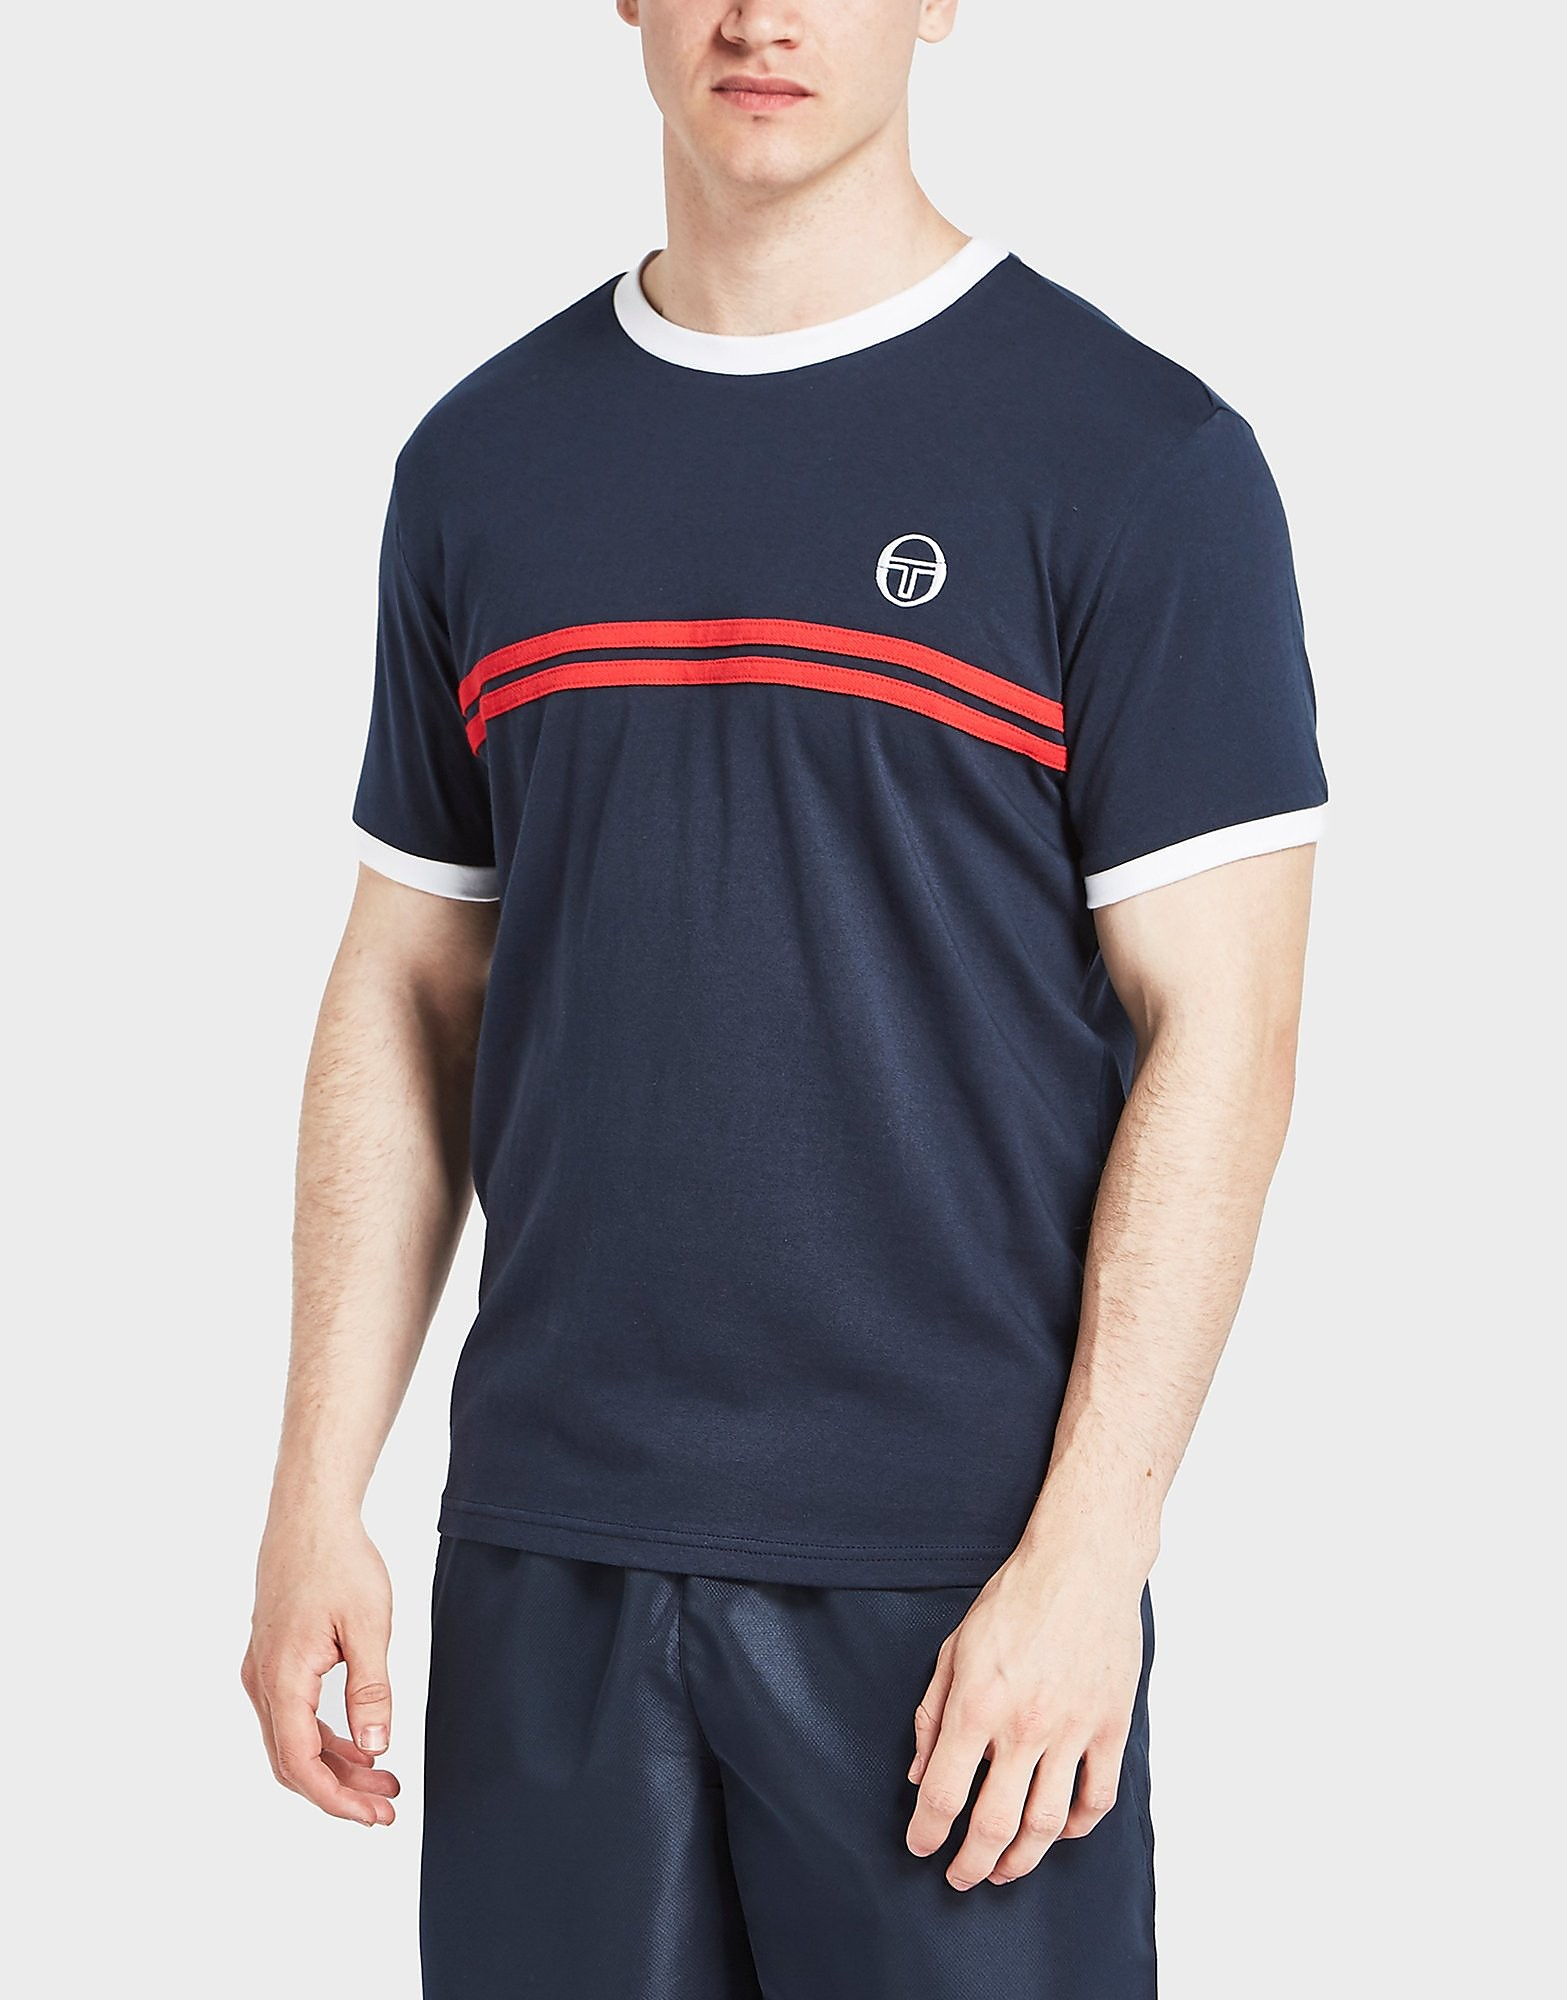 Sergio Tacchini Supermac 3 Short Sleeve T-Shirt